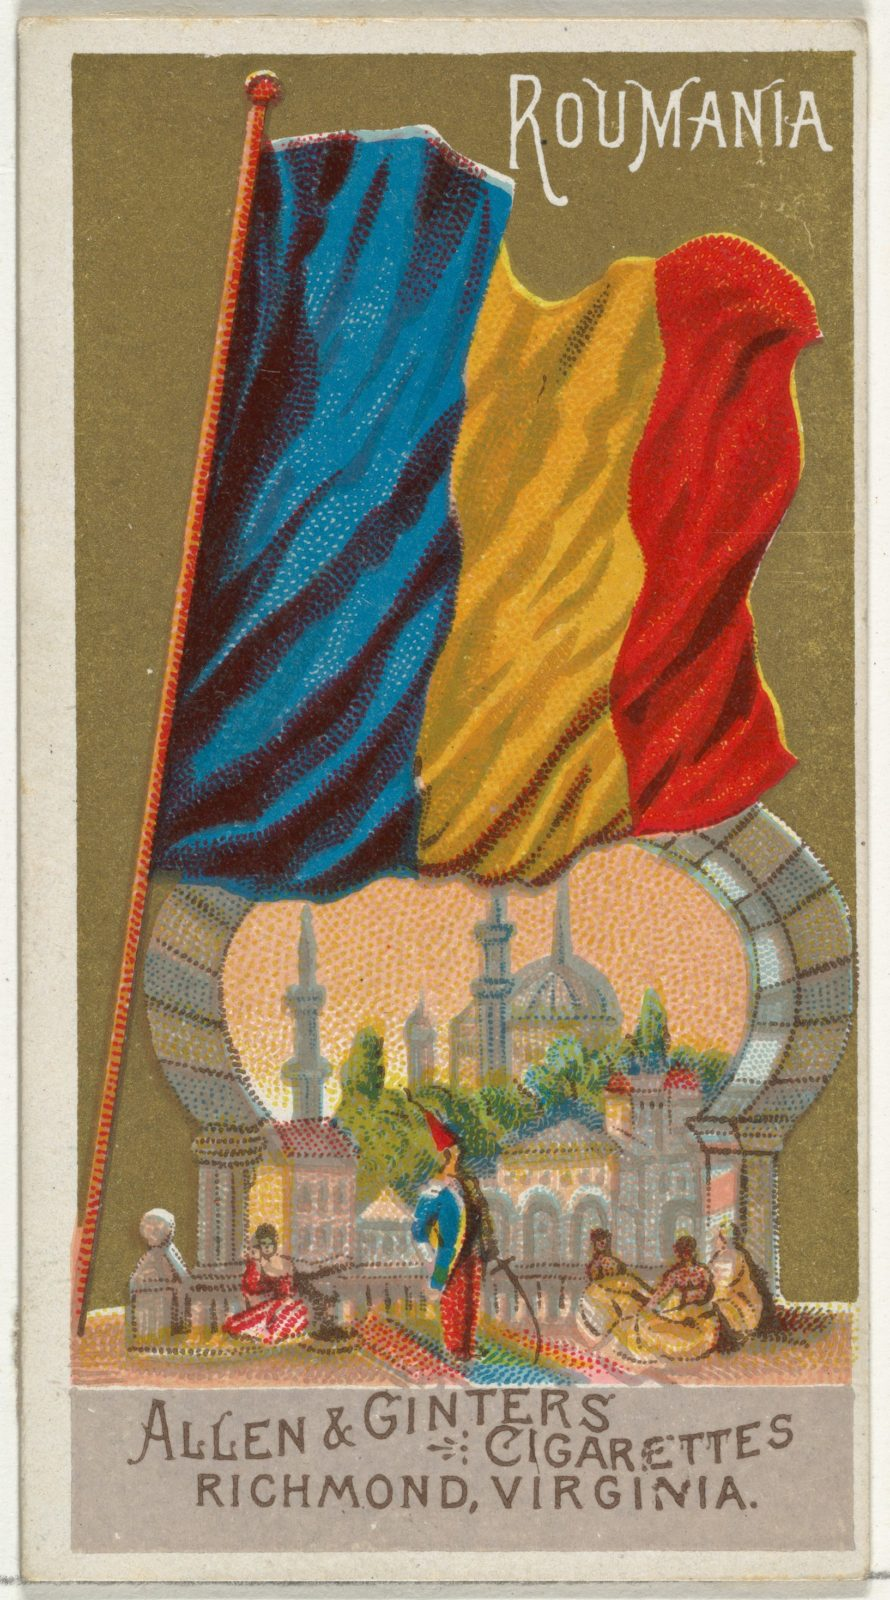 Romania, from Flags of All Nations, Series 1 (N9) for Allen & Ginter Cigarettes Brands